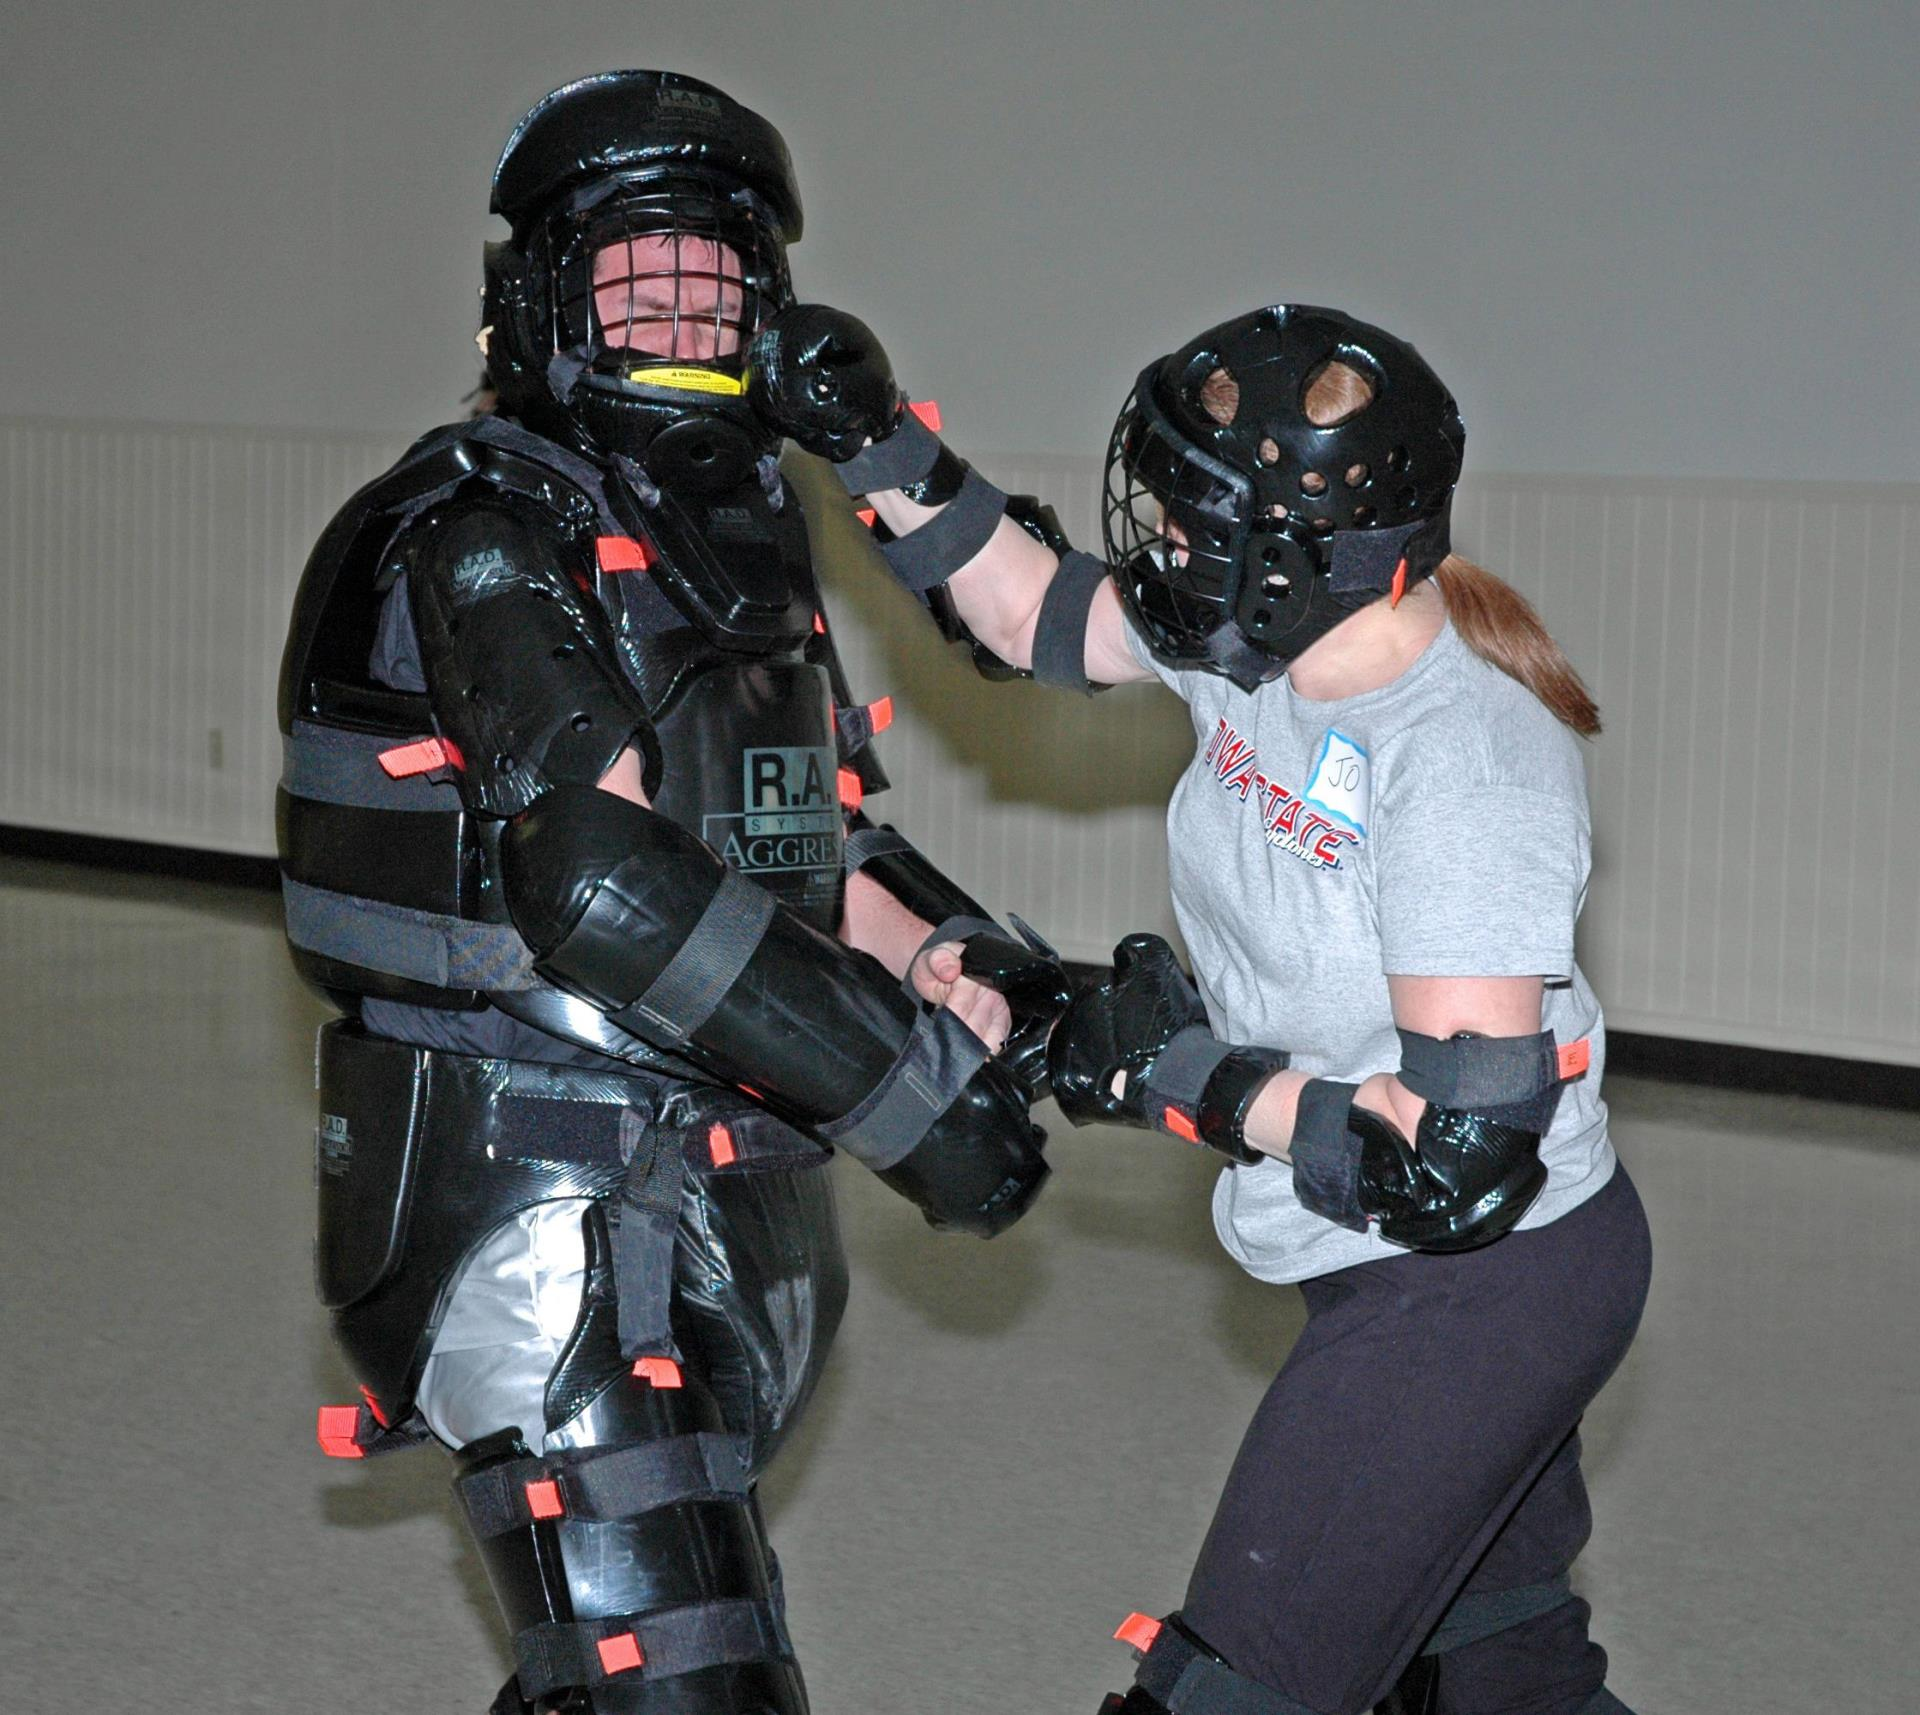 RAD Self Defense Class physical training